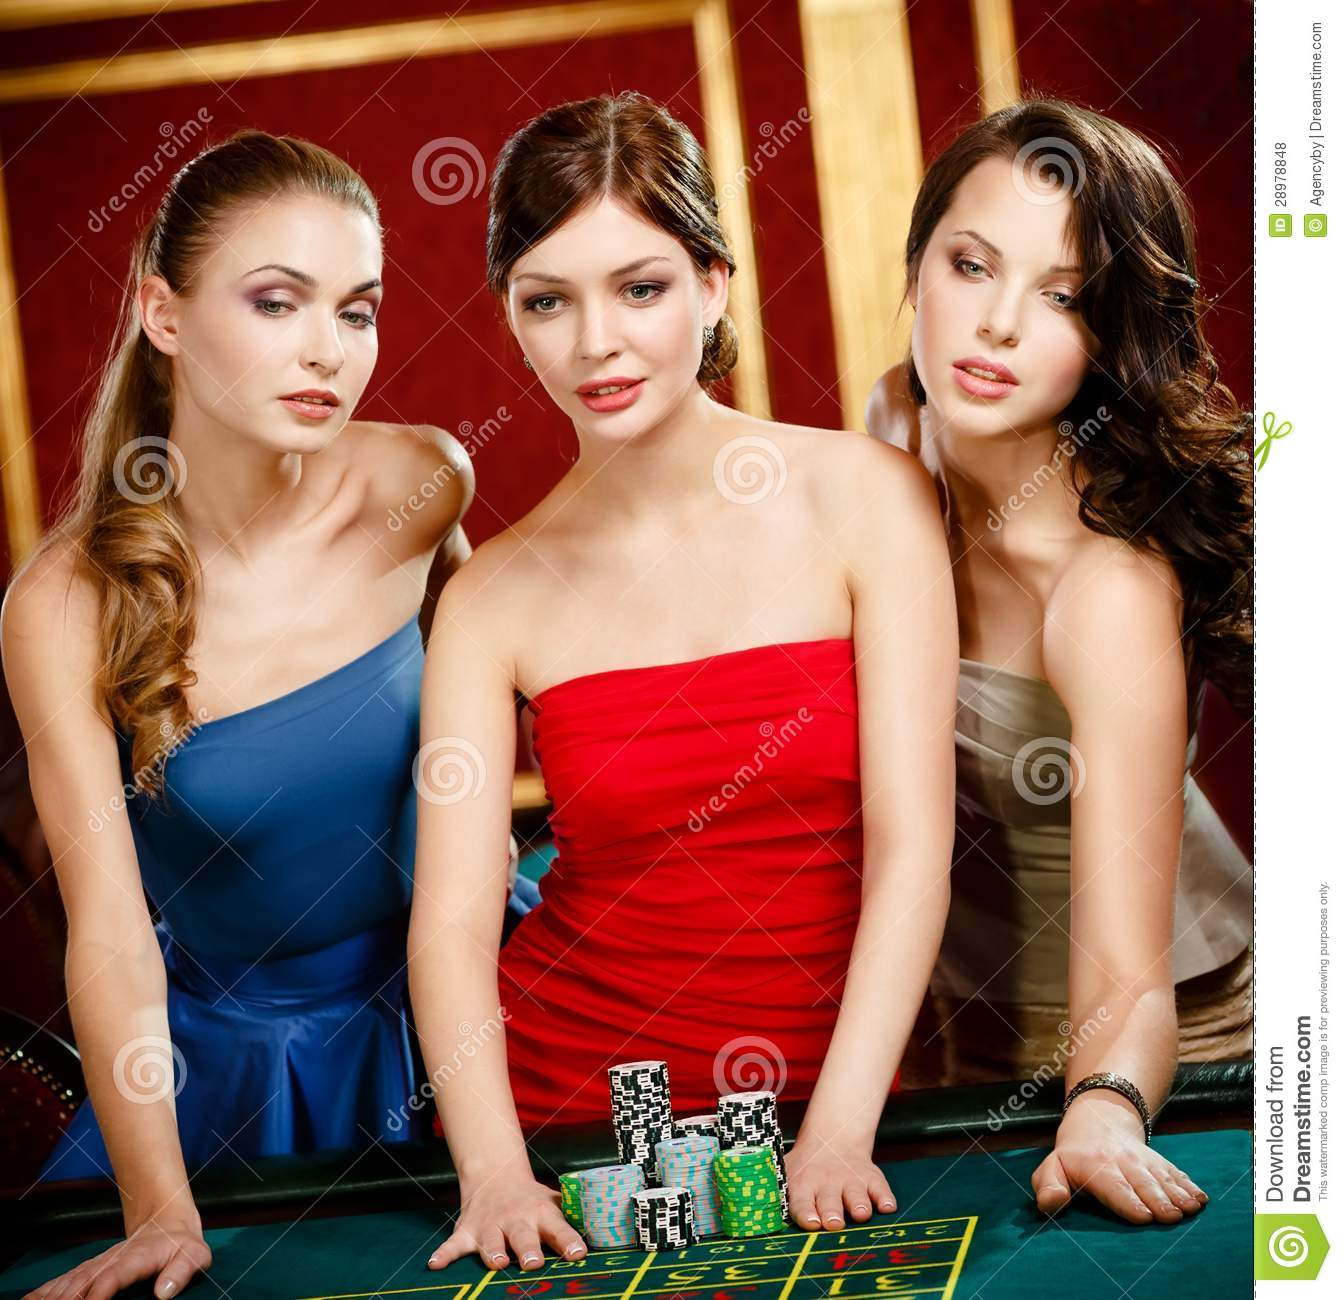 roulette girls Roulette chat is a free video social network for adults live webcam chat with random strangers from all over the world in group or private cam2cam video chat.